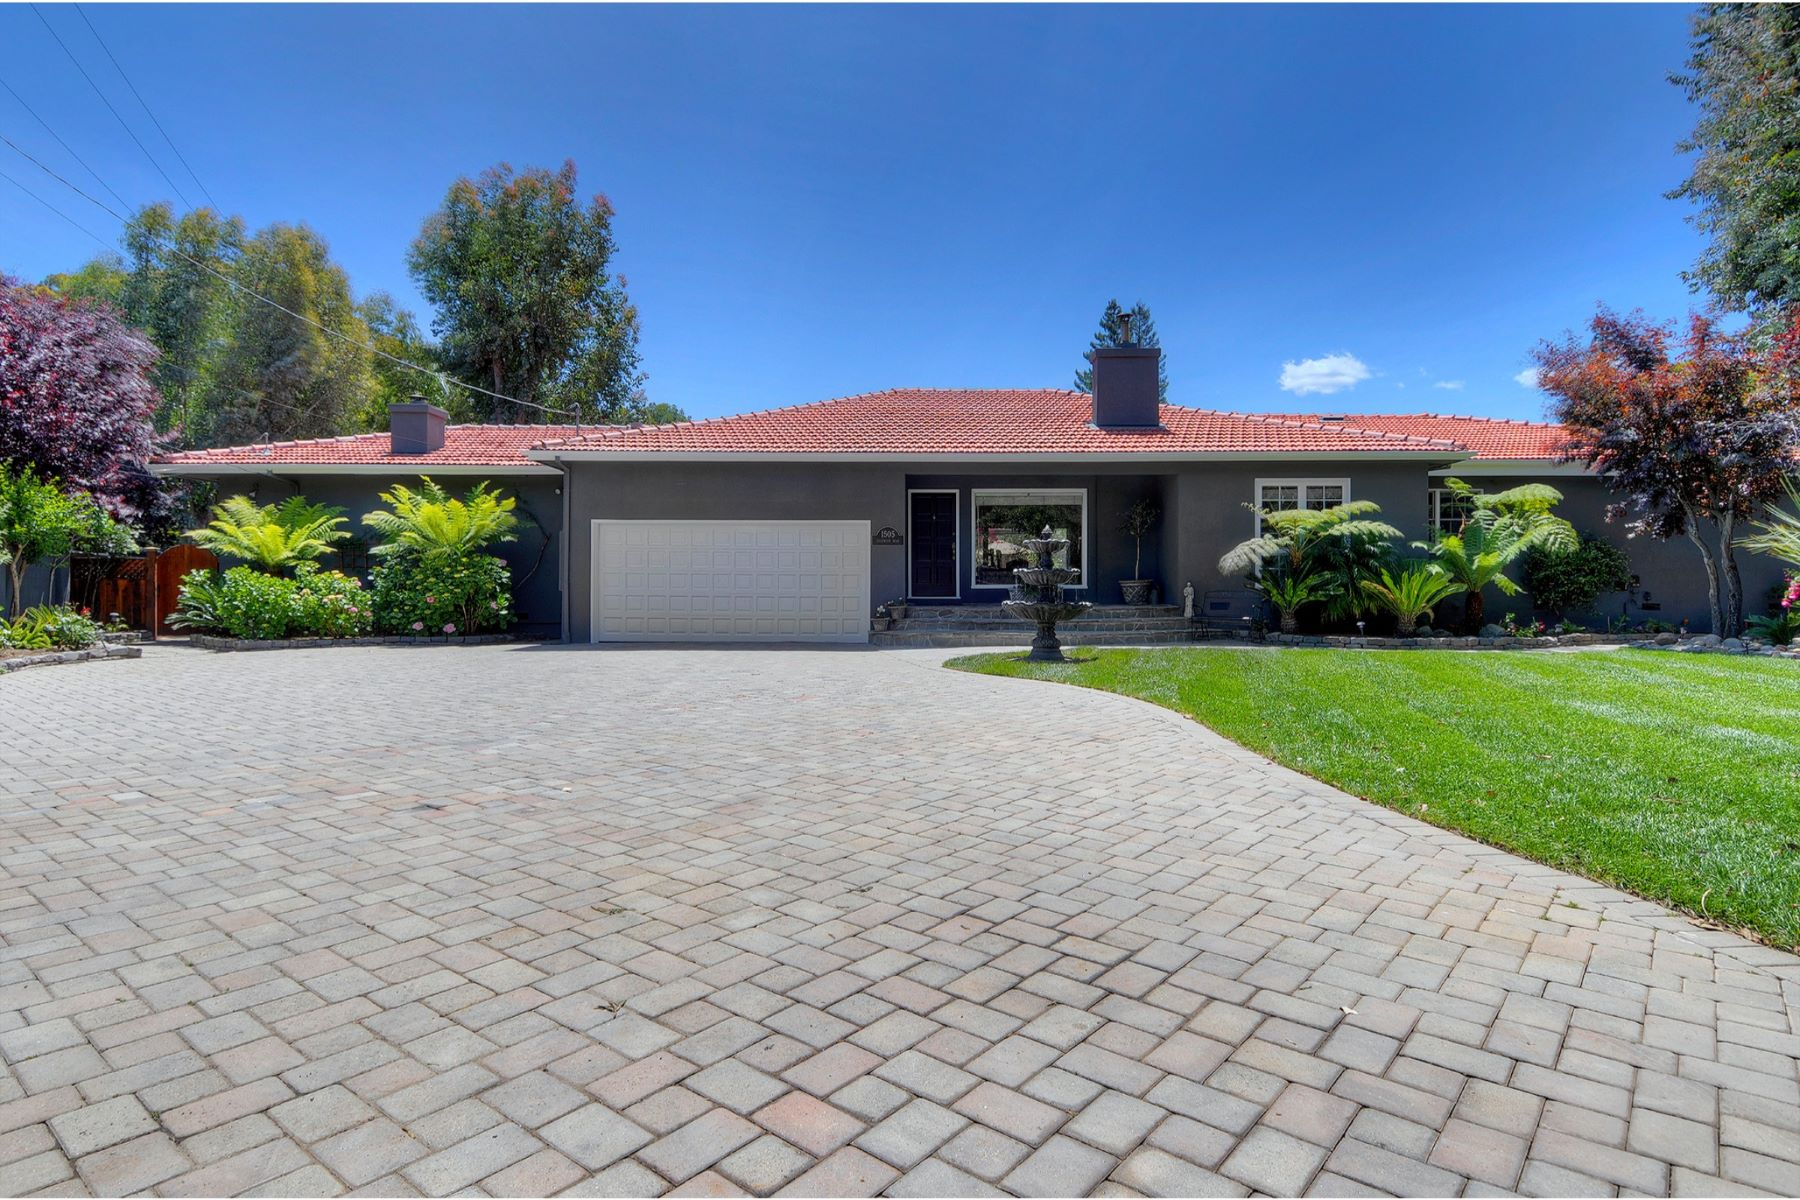 Single Family Home for Sale at 1505 Edgewood Road Redwood City, California 94062 United States